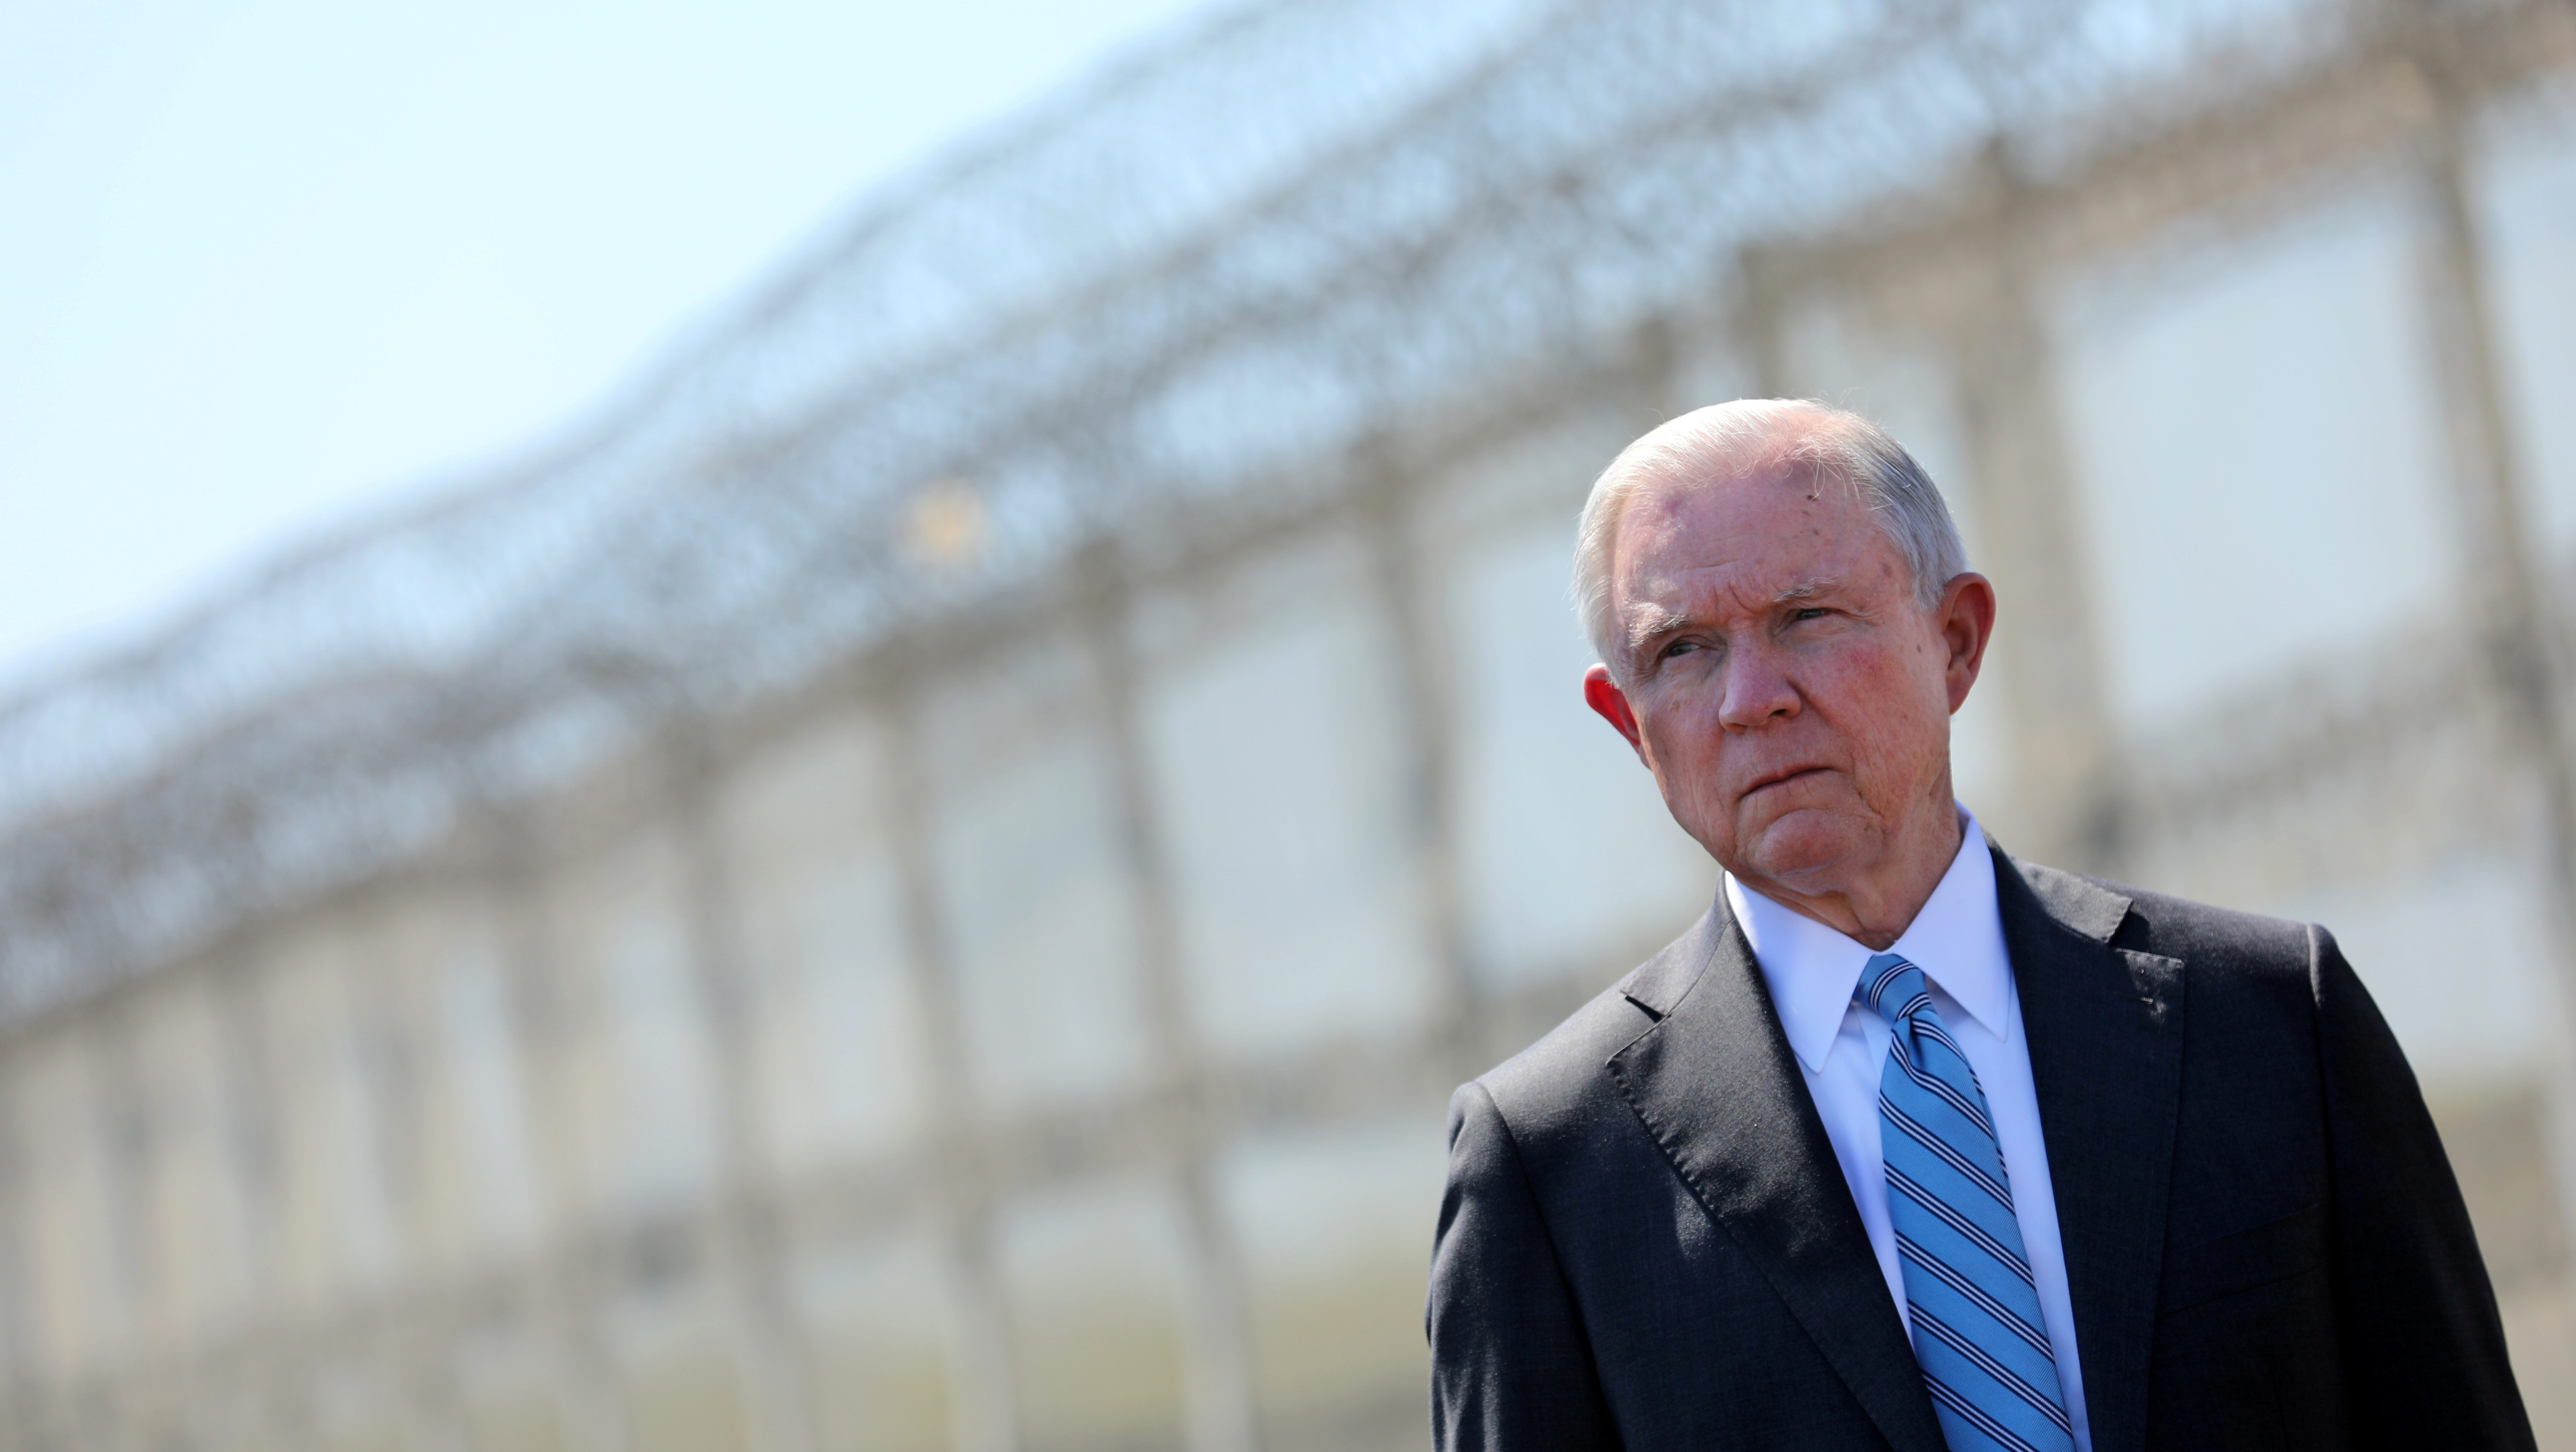 FILE PHOTO: Attorney General Jeff Sessions looks out towards Mexico as he stands by a secondary border fencer during visit to the U.S. Mexico border fence in San Diego, California, U.S. April 21, 2017.  REUTERS/Mike Blake/File Photo - RTS15WXF